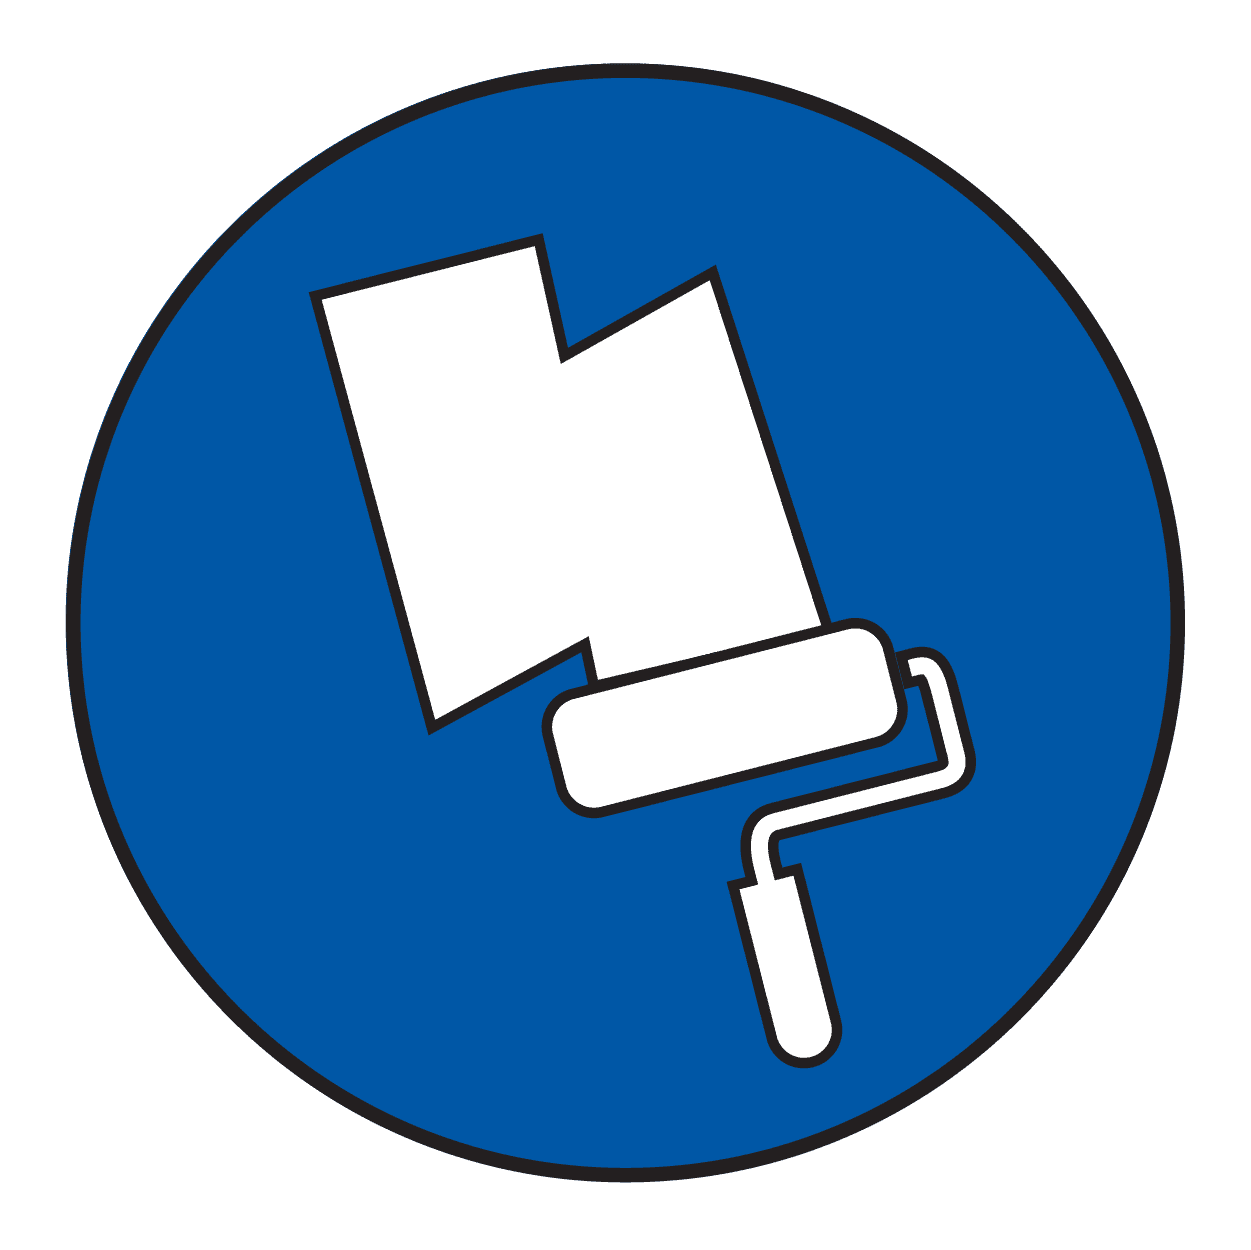 Blue icon of a paint roller and primer.